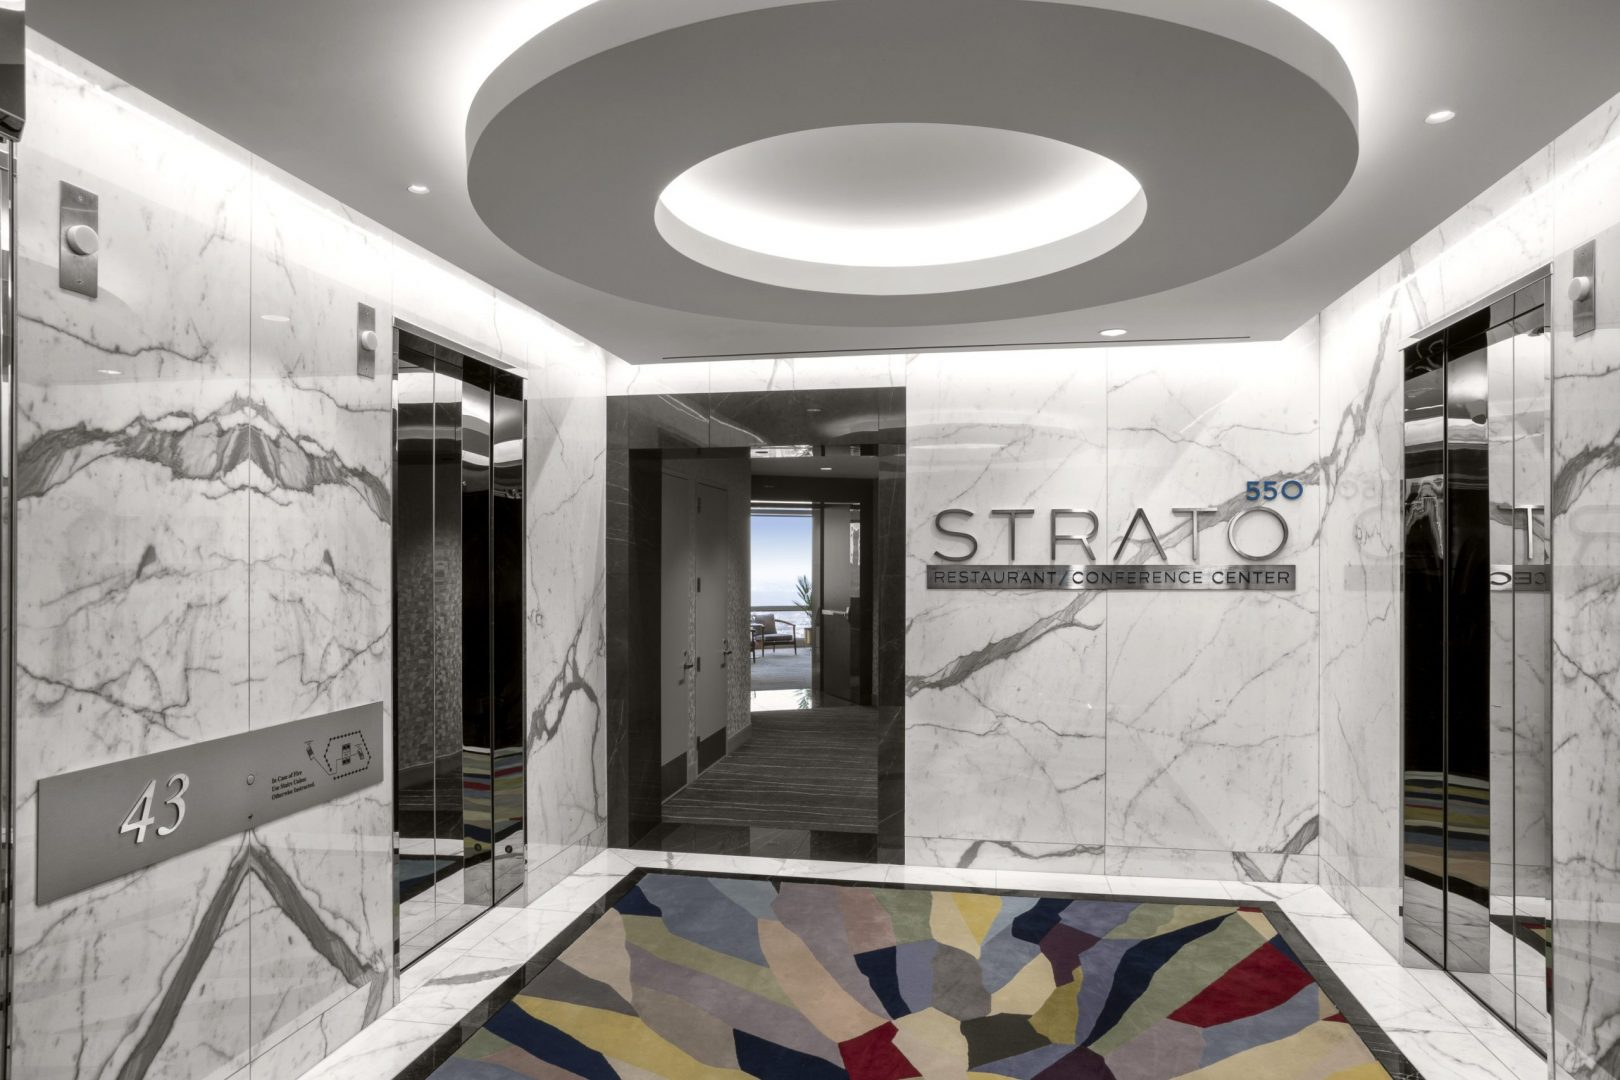 Corporate Hospitality Interior Design Restaurant Houston Strato550 Entrance